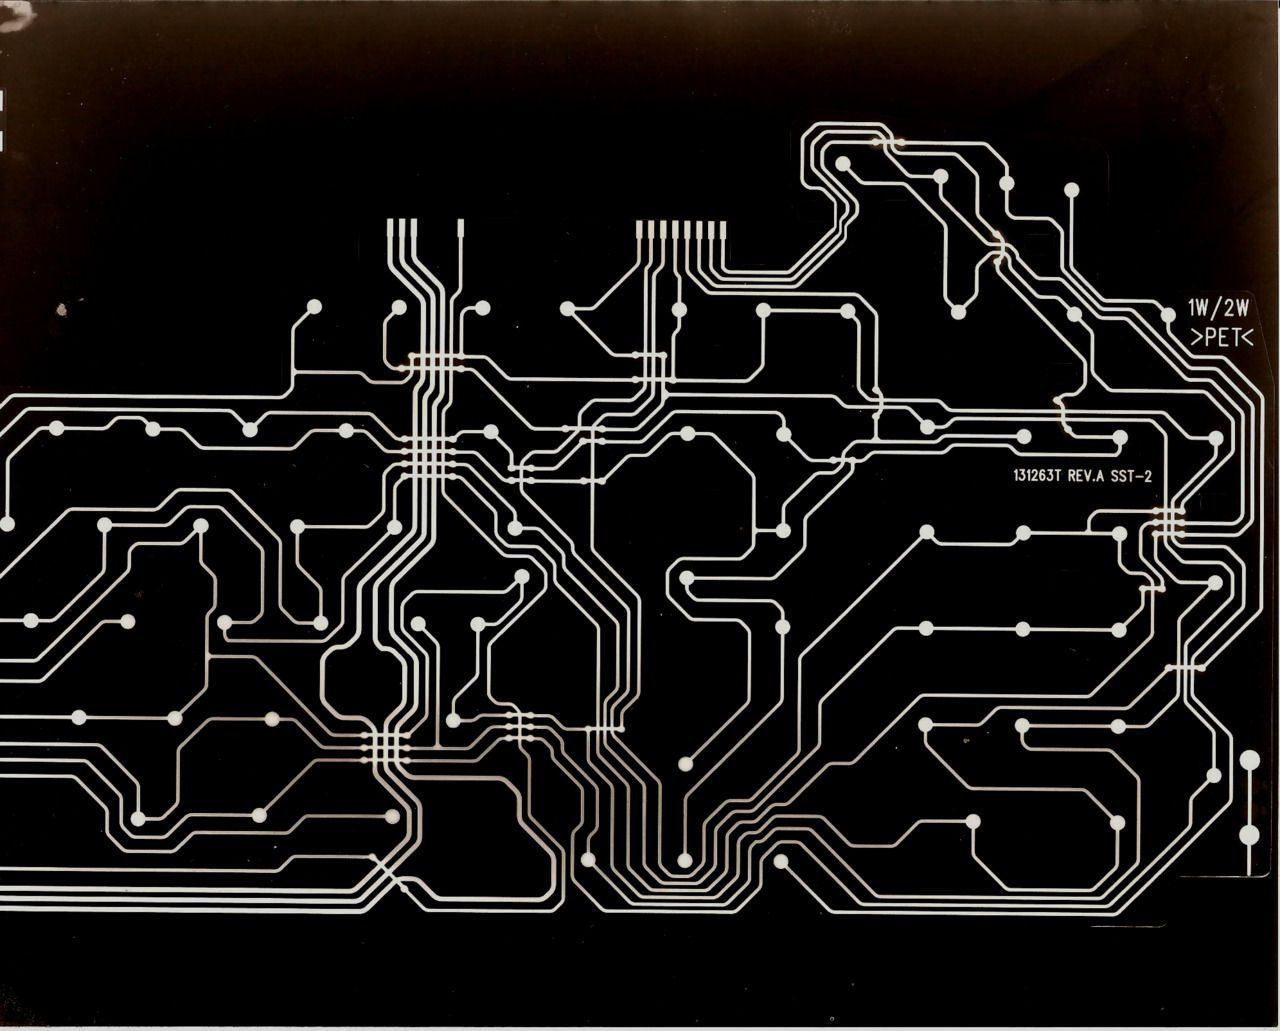 The third electronic blueprint/circuit photogram (found inside an ...